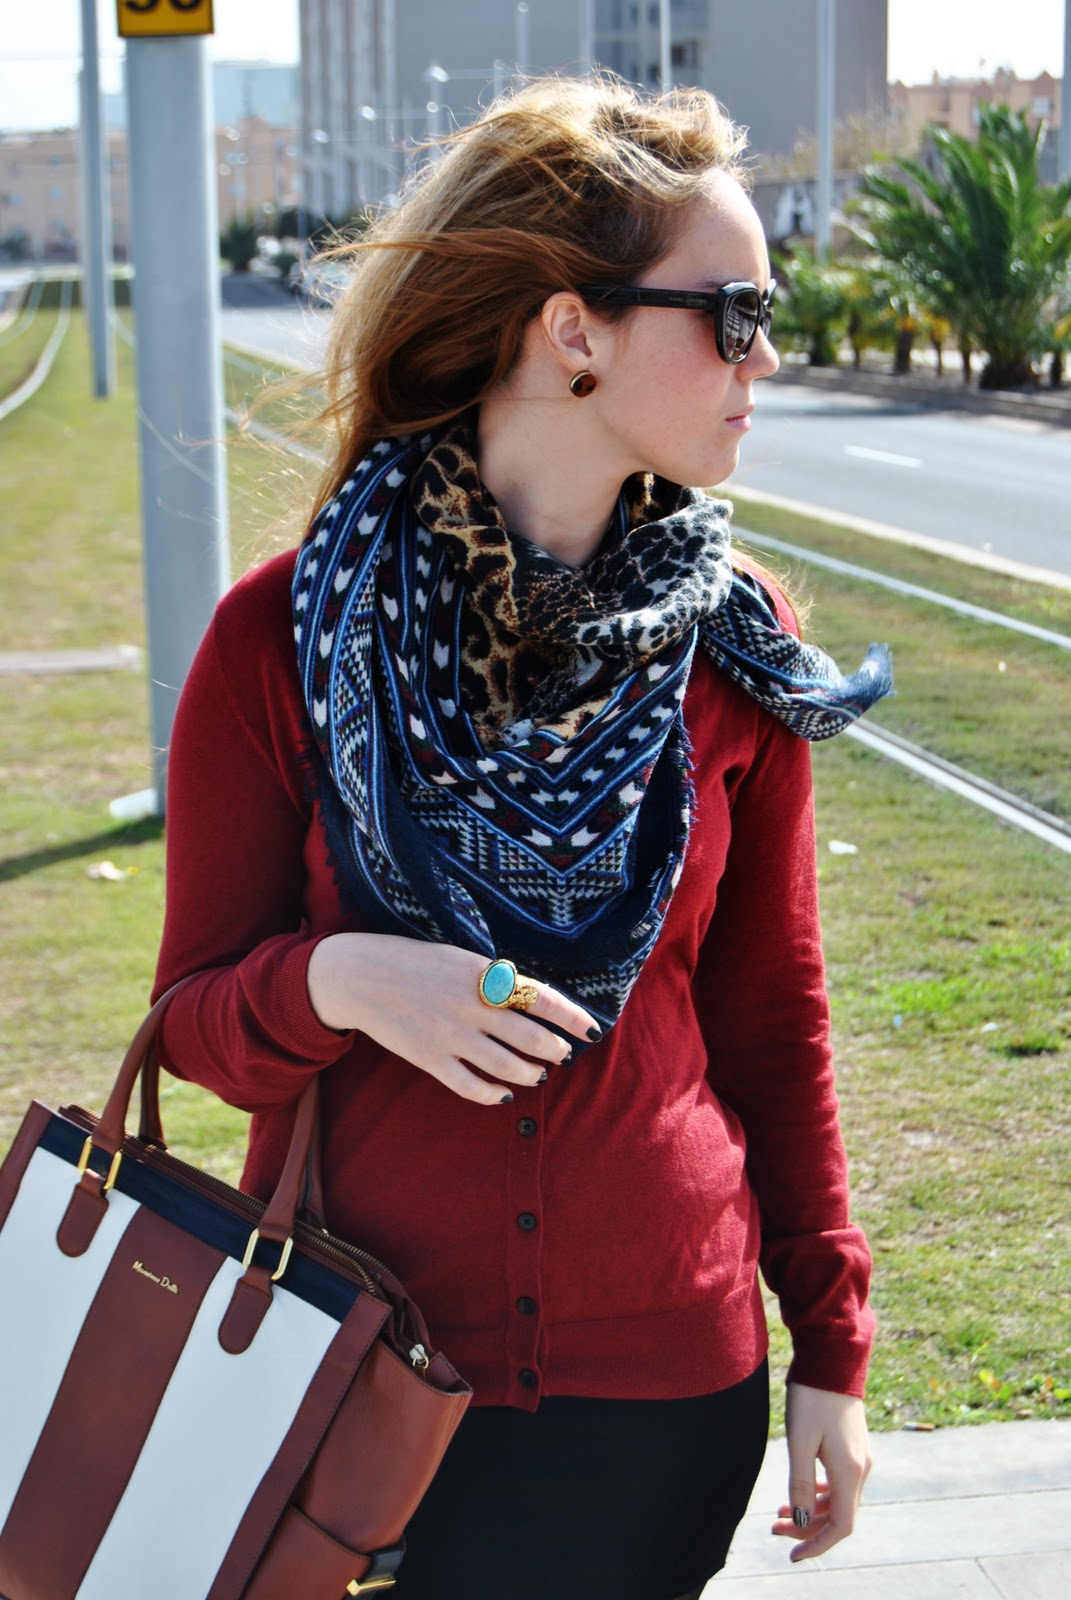 scarf, nery hdez, bussines look,